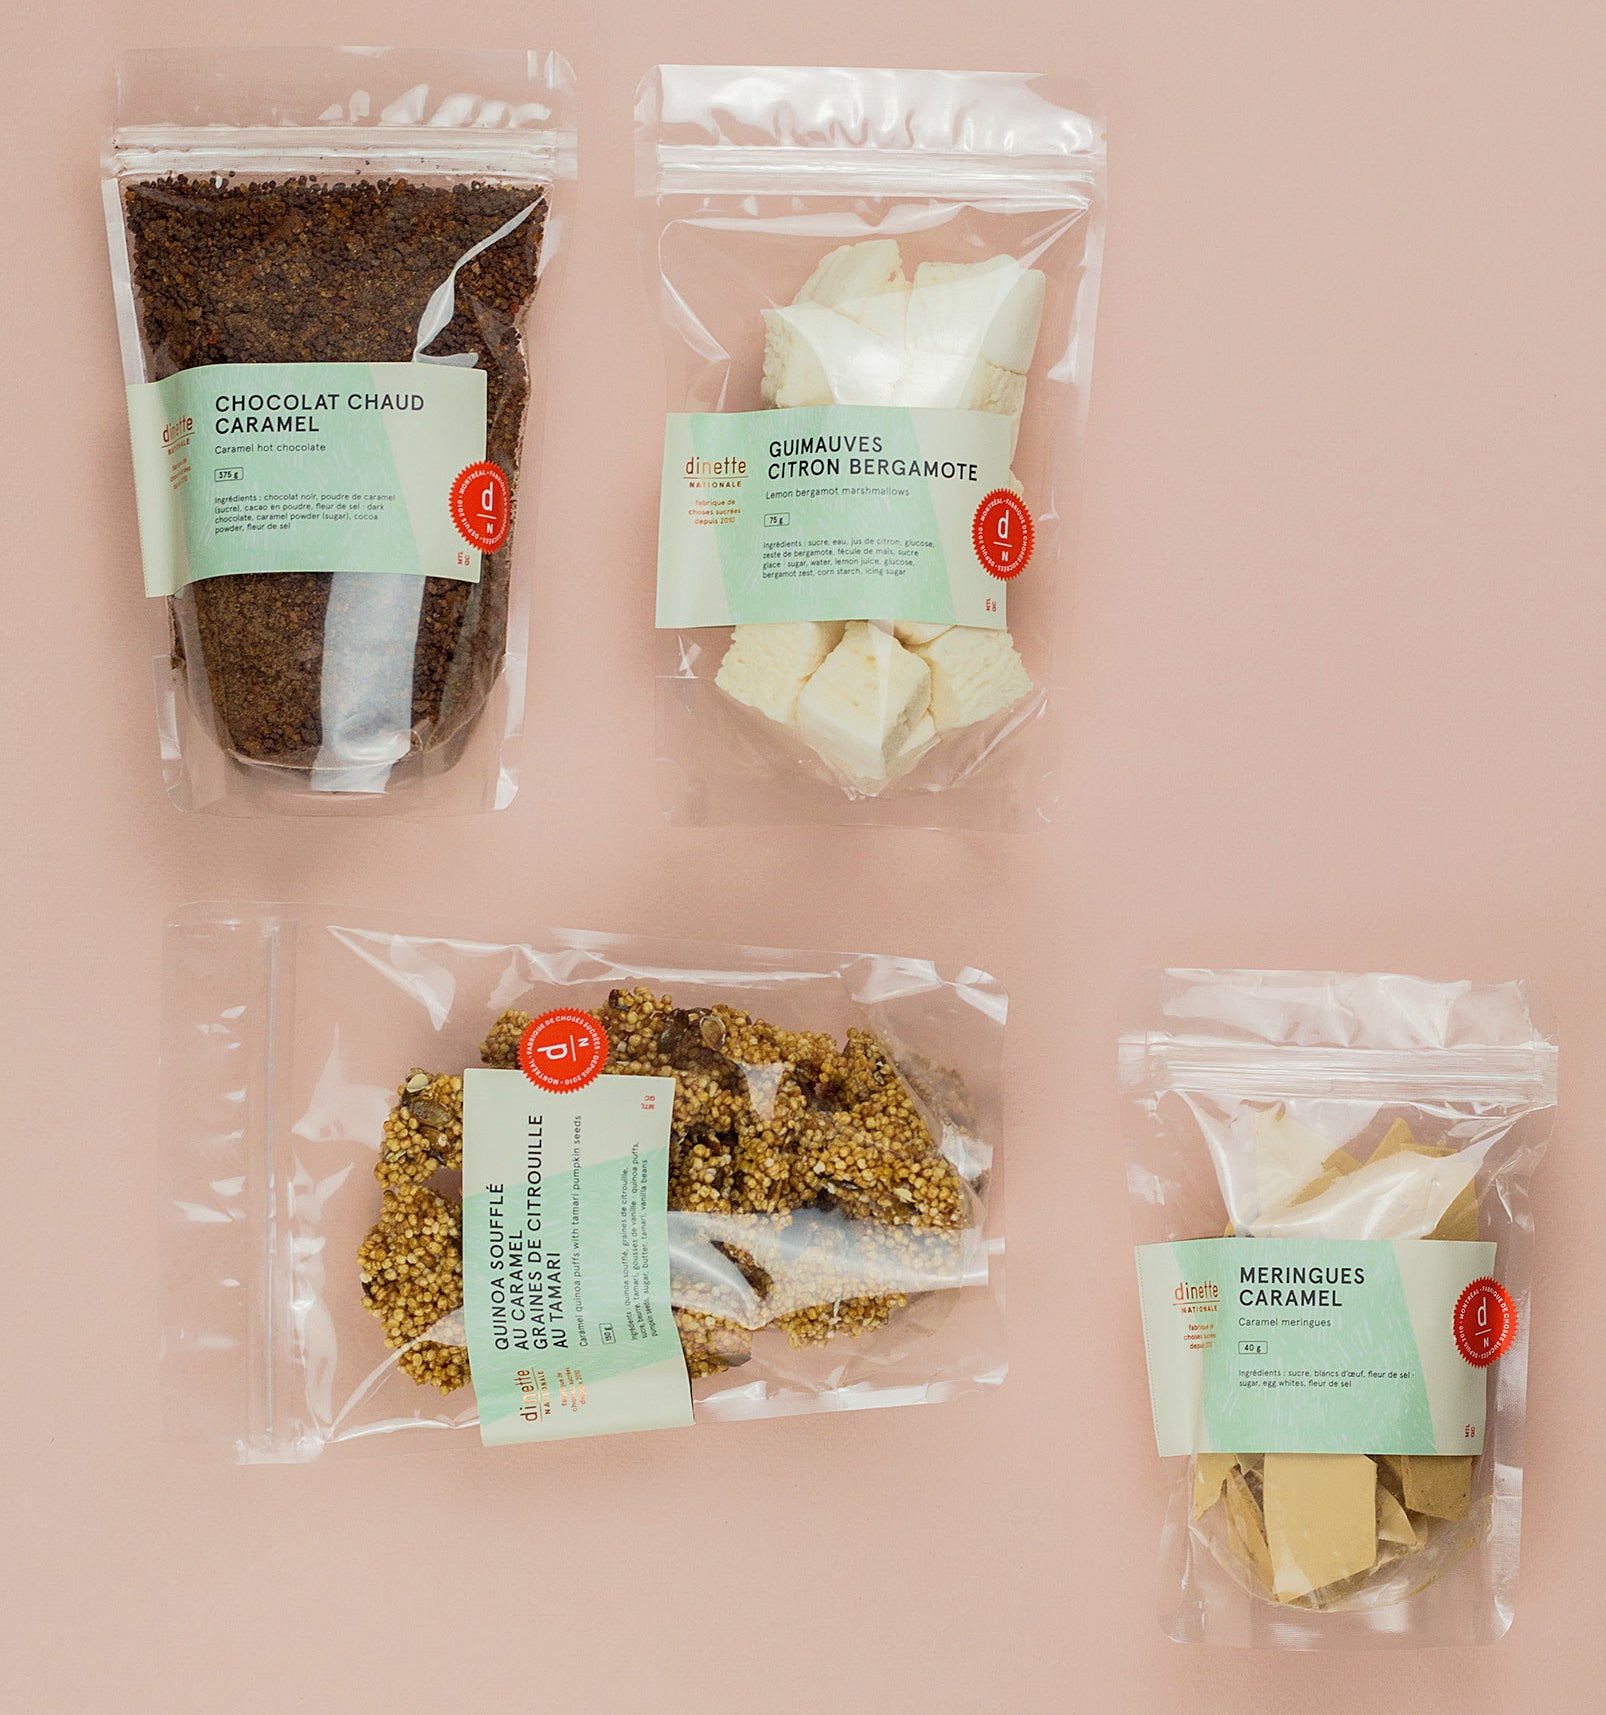 Four packages of food on a plain background